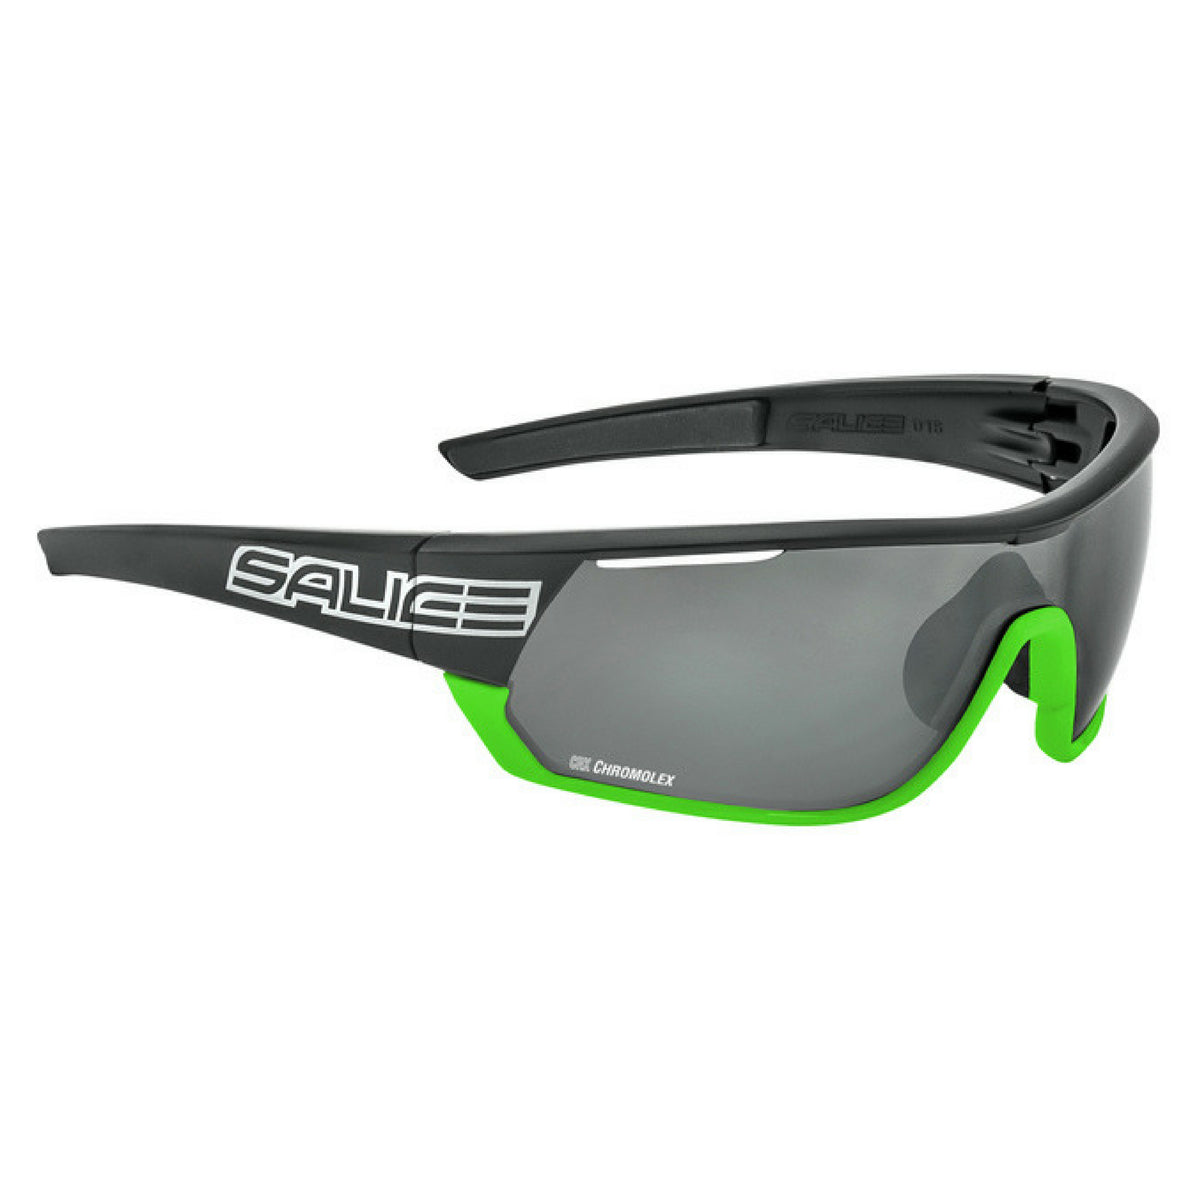 Salice 016 CRX Photochromic Lens